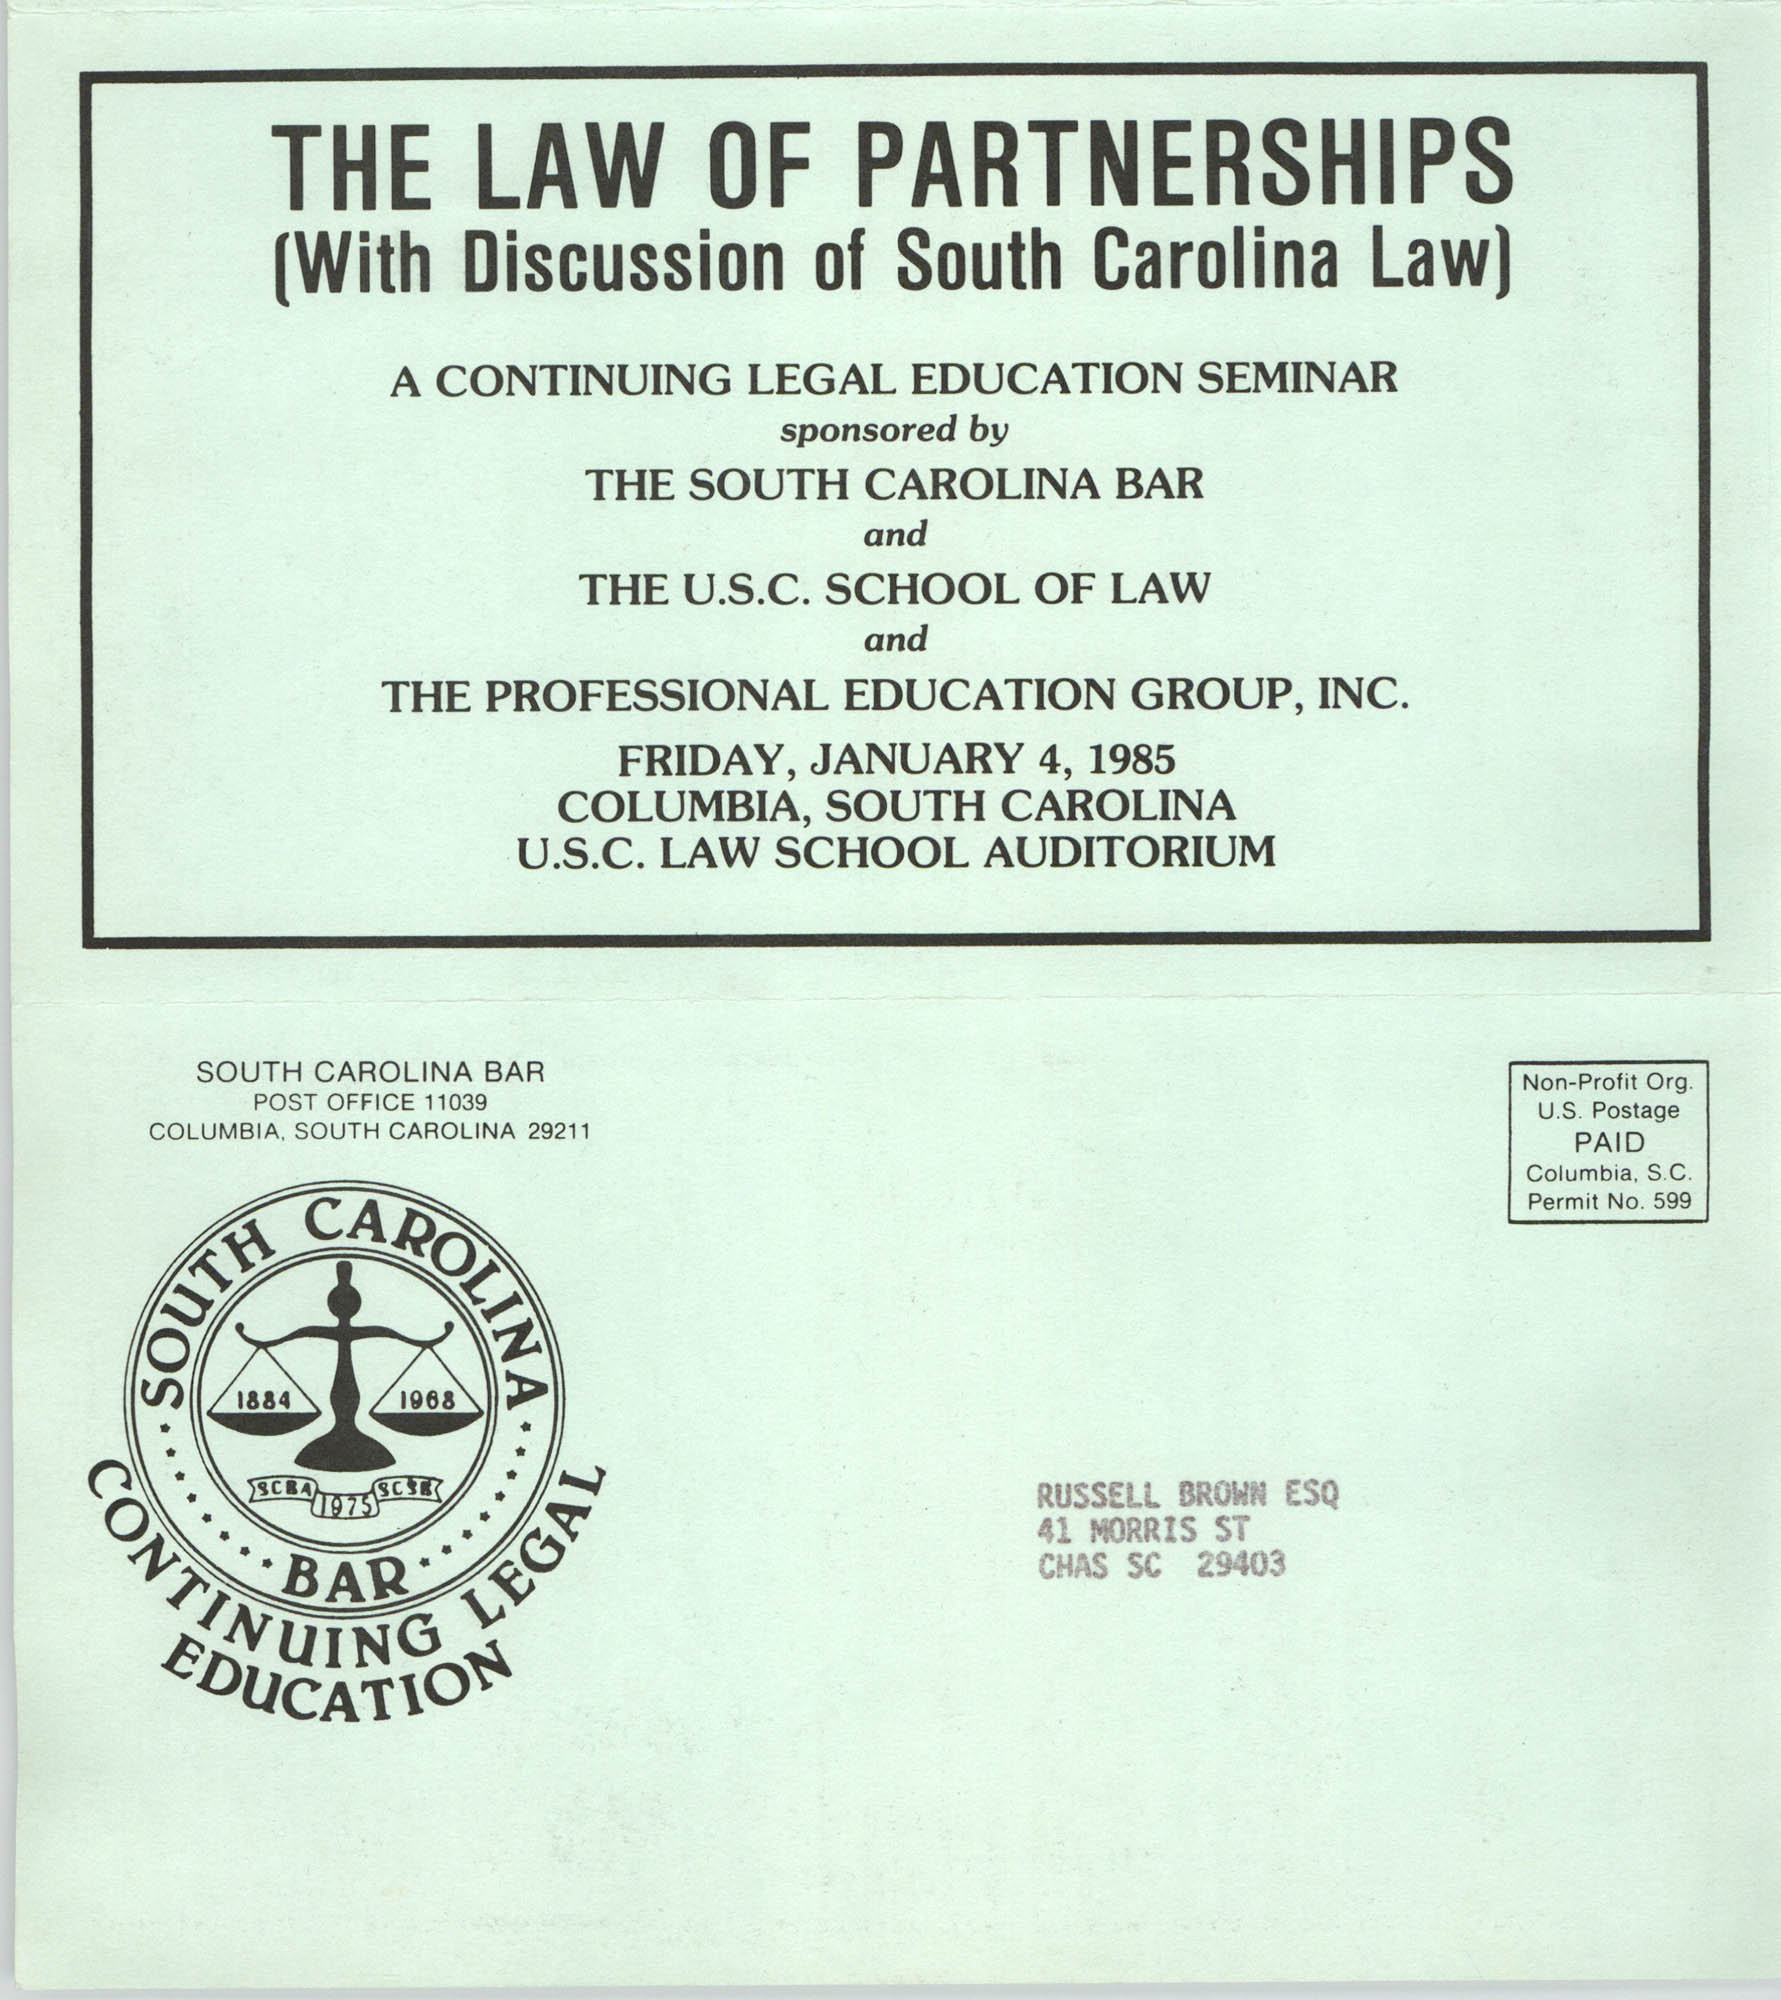 The Law of Partnerships, Continuing Education Seminar Pamphlet, January 5, 1985, Russell Brown